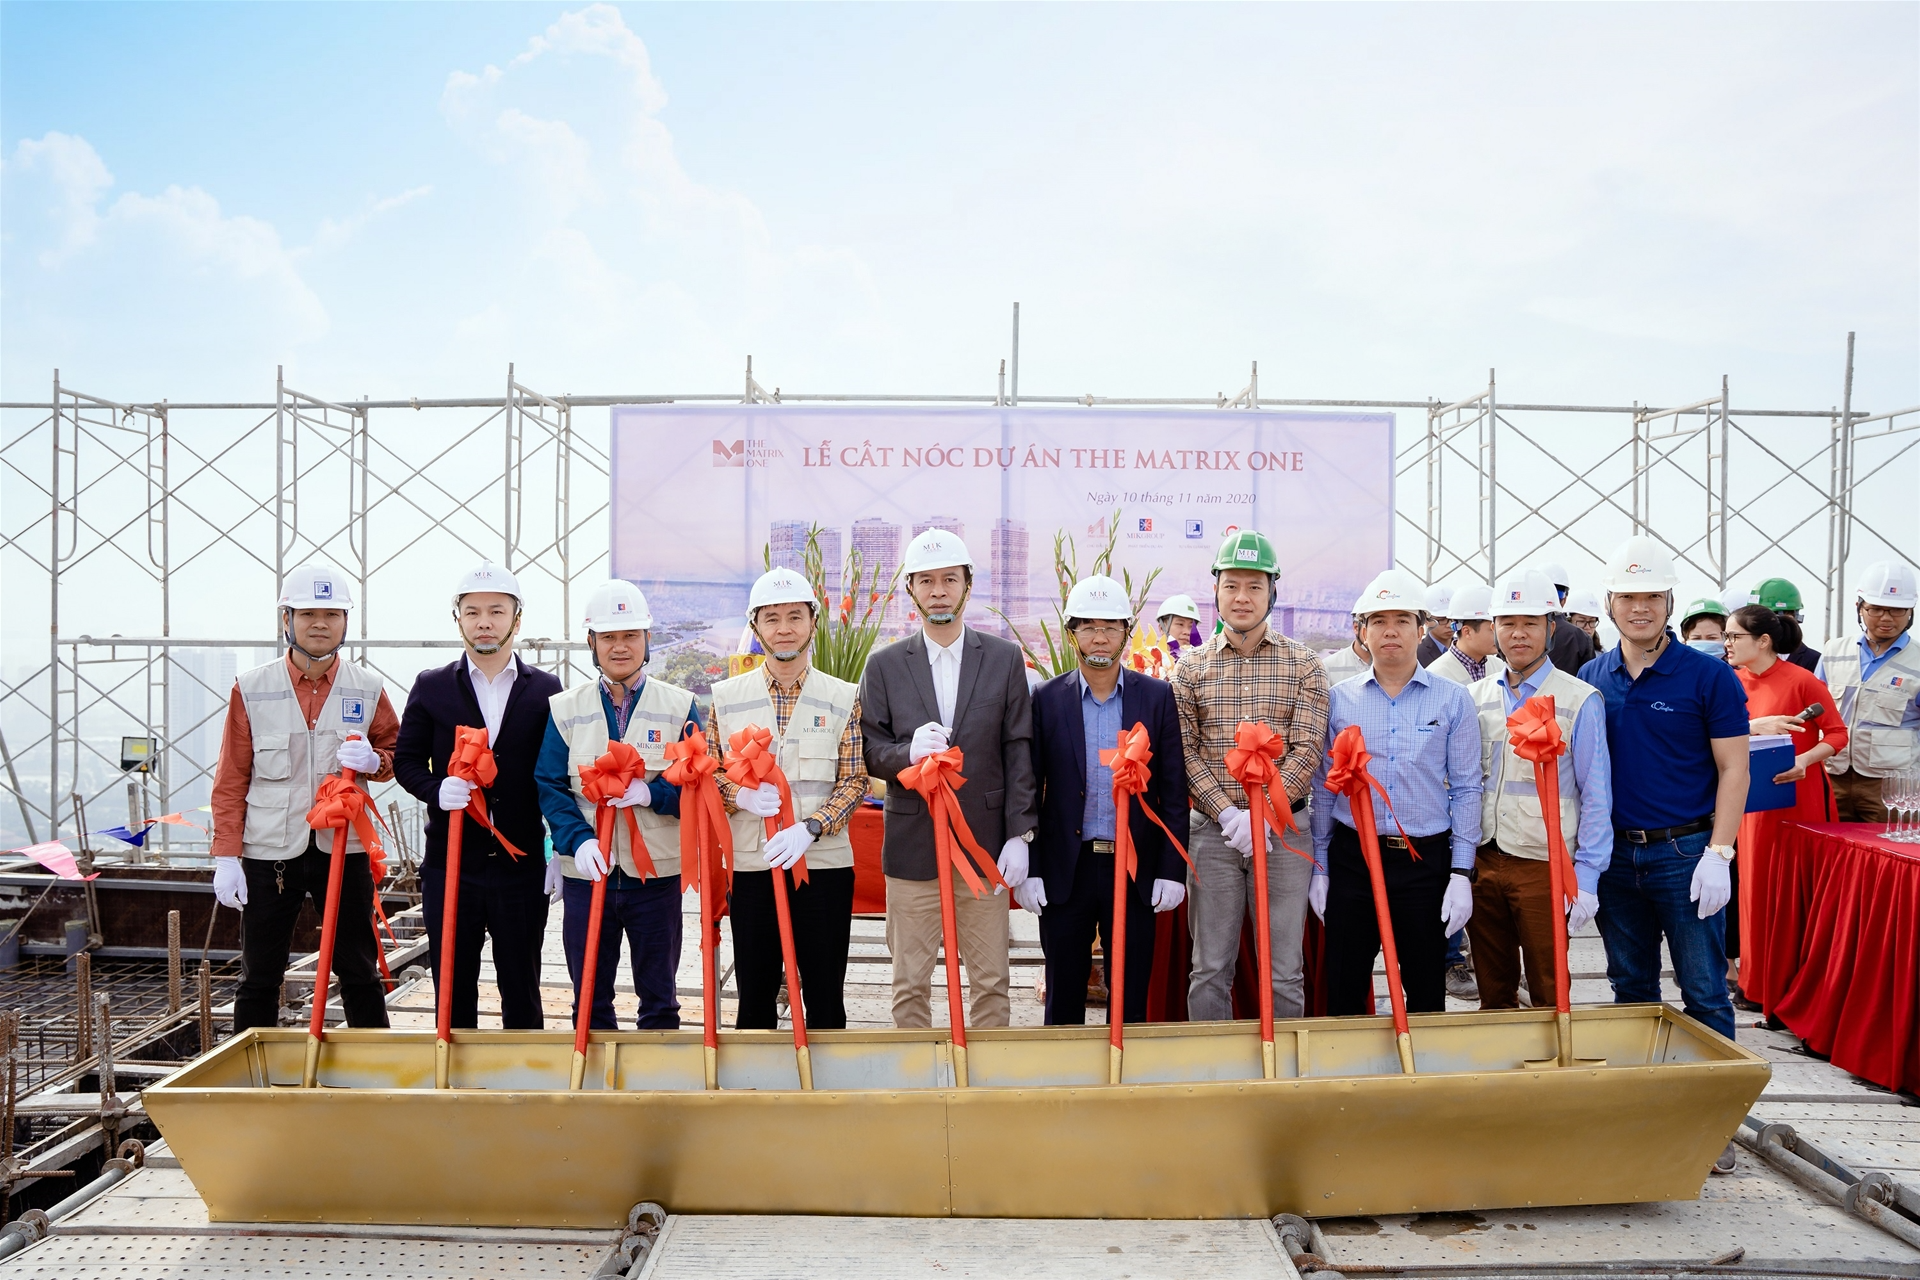 MIKGROUP FINISHES ON SCHEDULE AS THE MATRIX ONE'S TOPPING-OUT CEREMONY COMMENCES